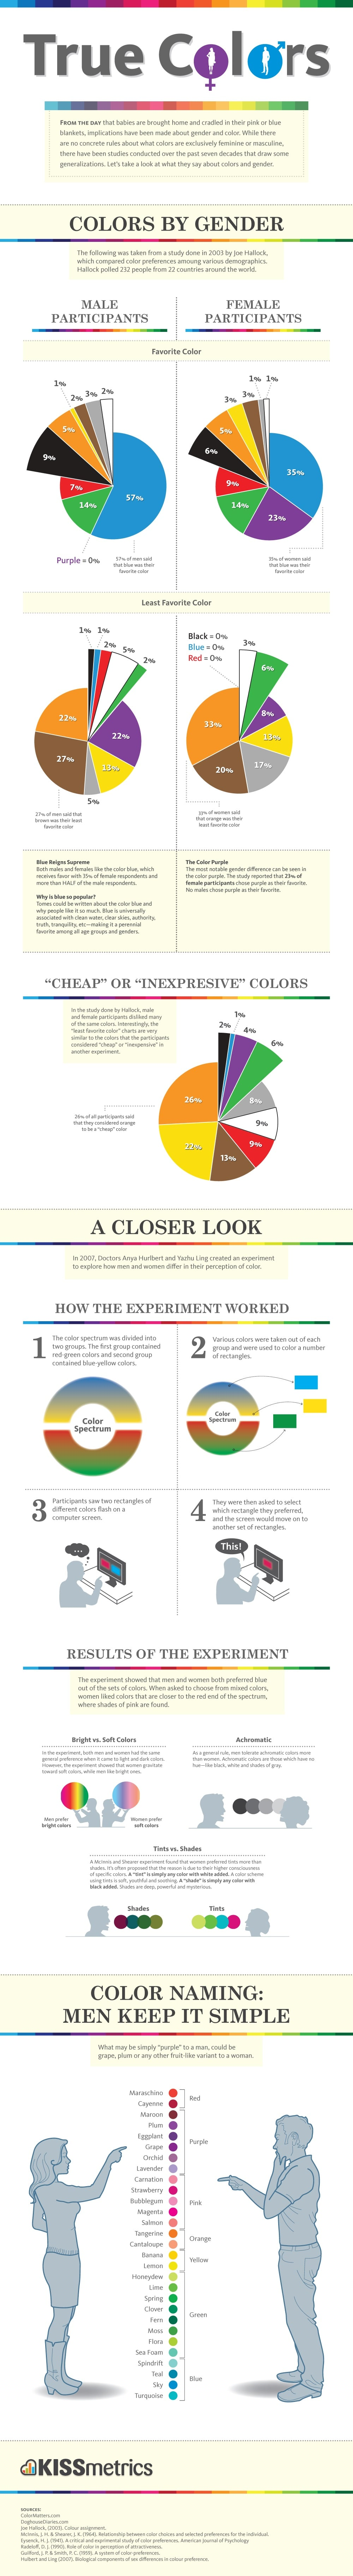 color theory for web designers pdf